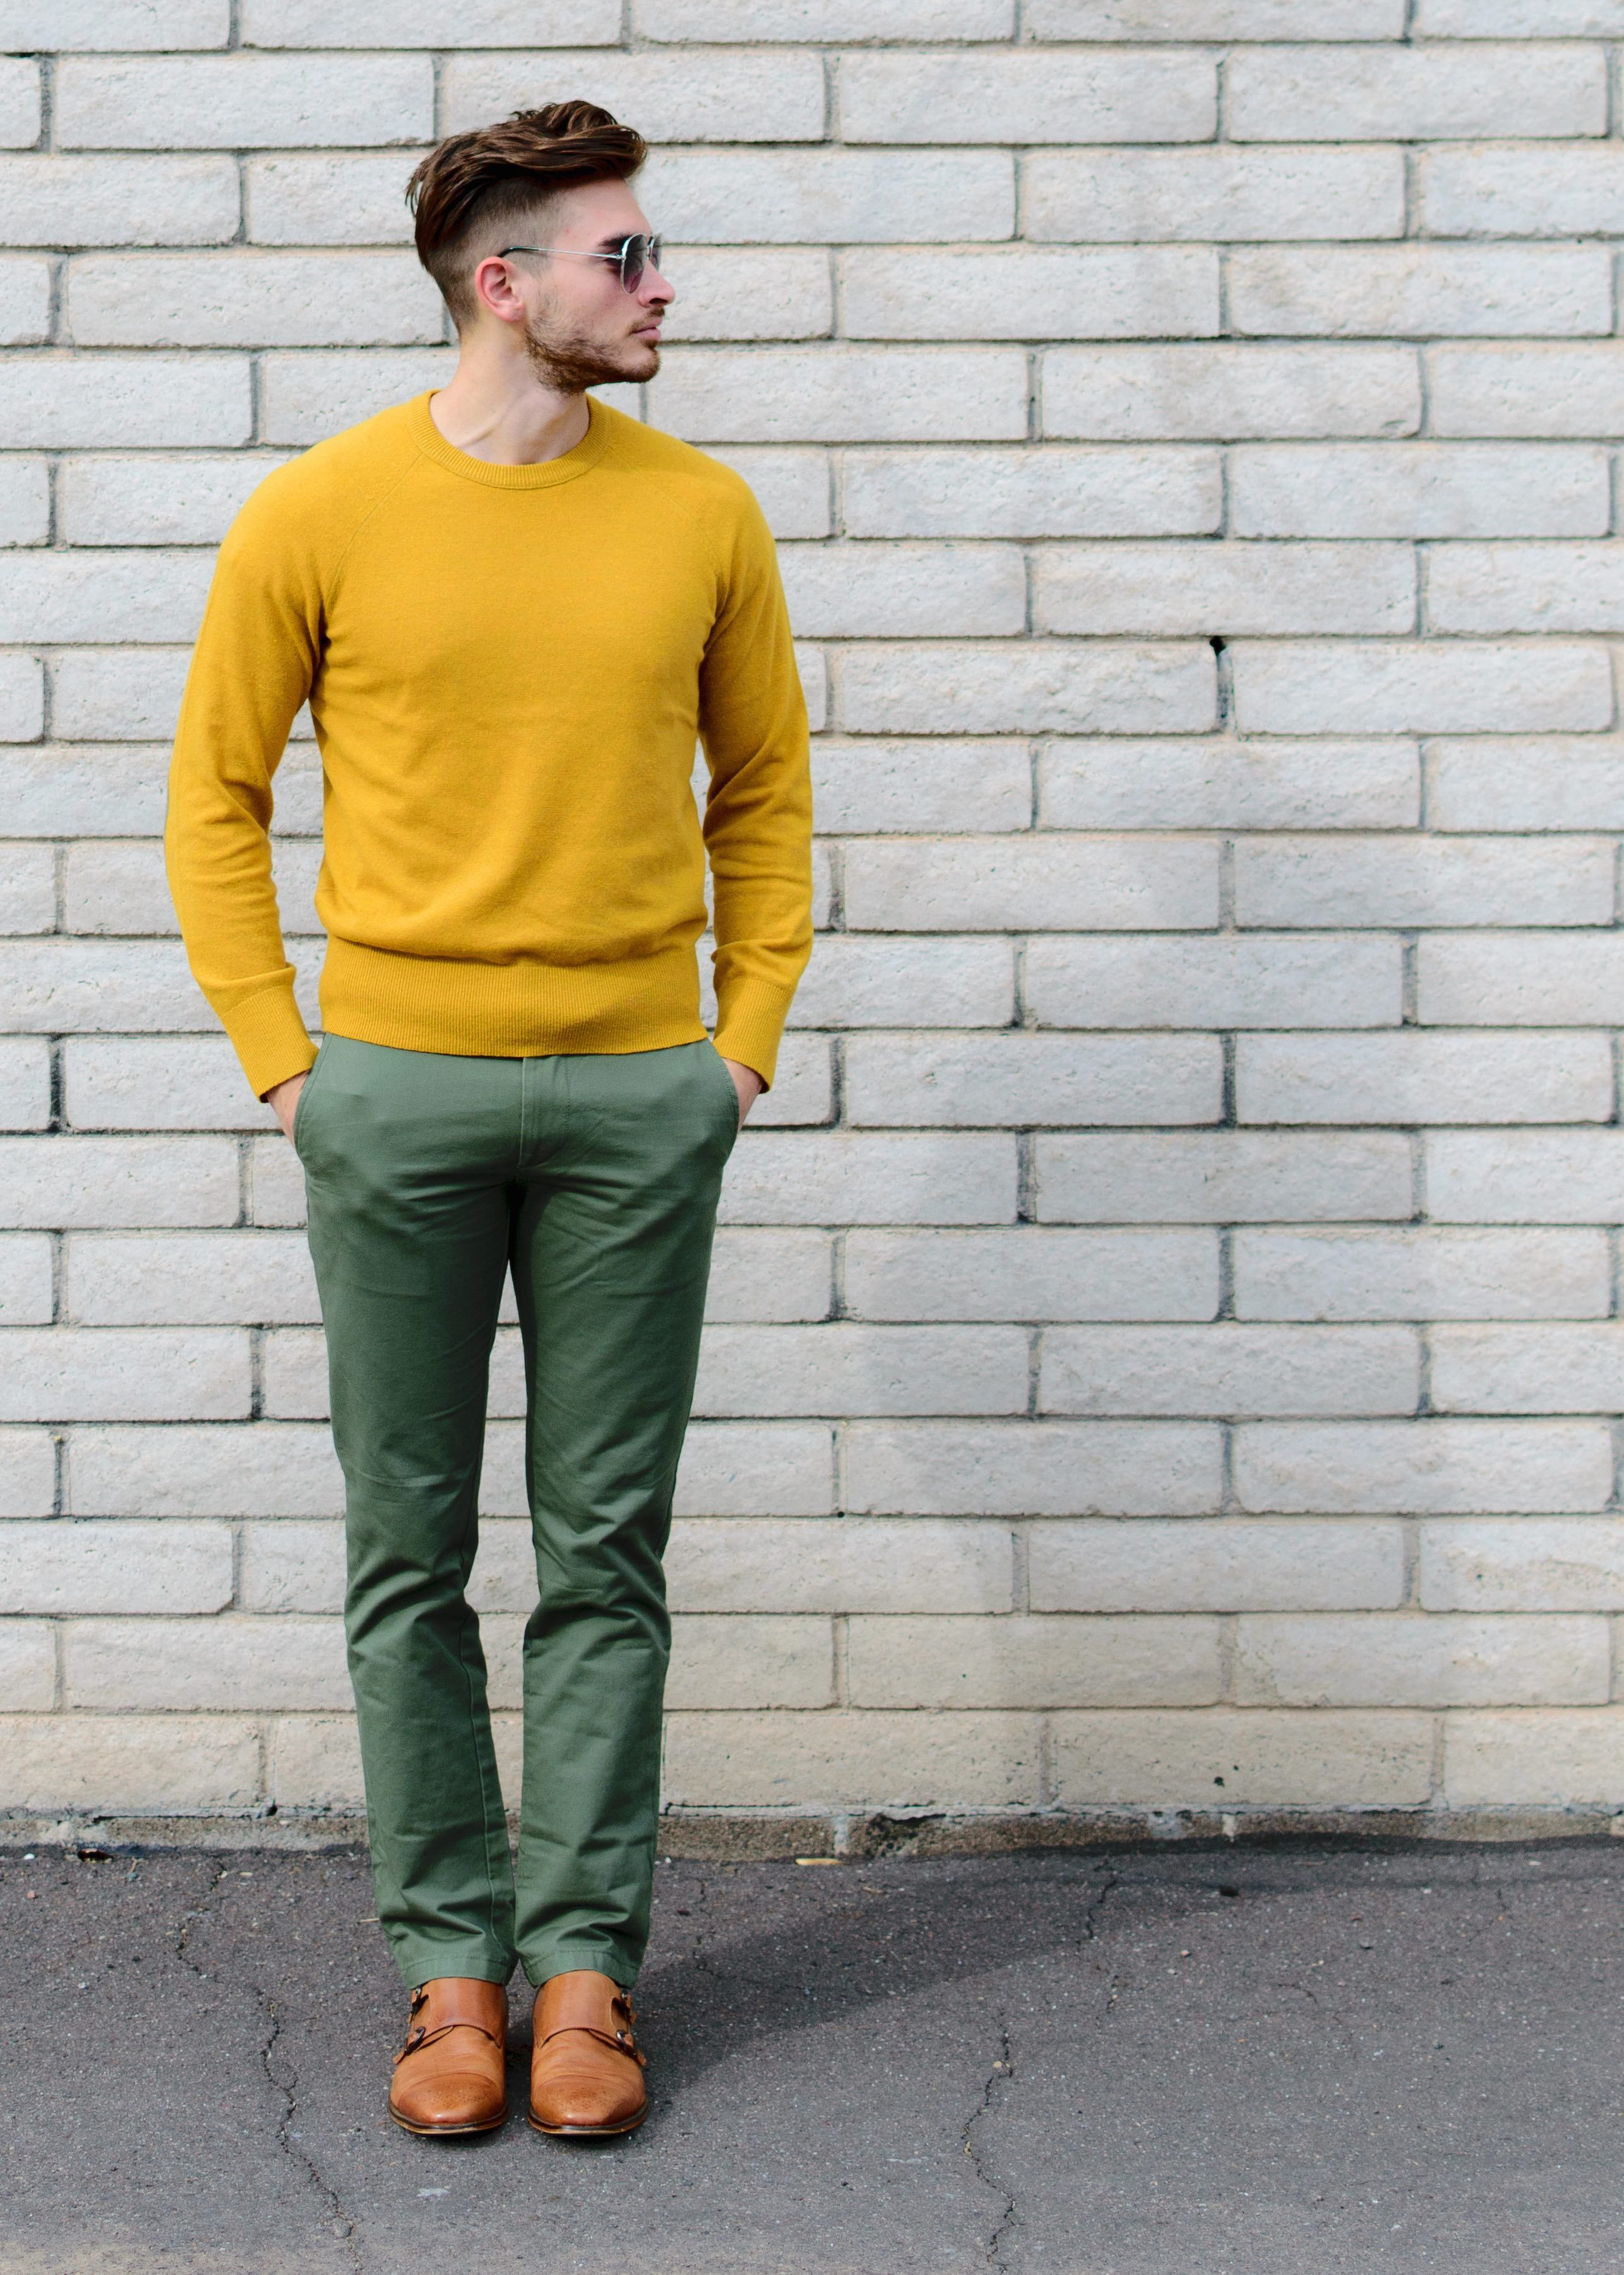 This mustard yellow and green combo is a great way to stand out ...